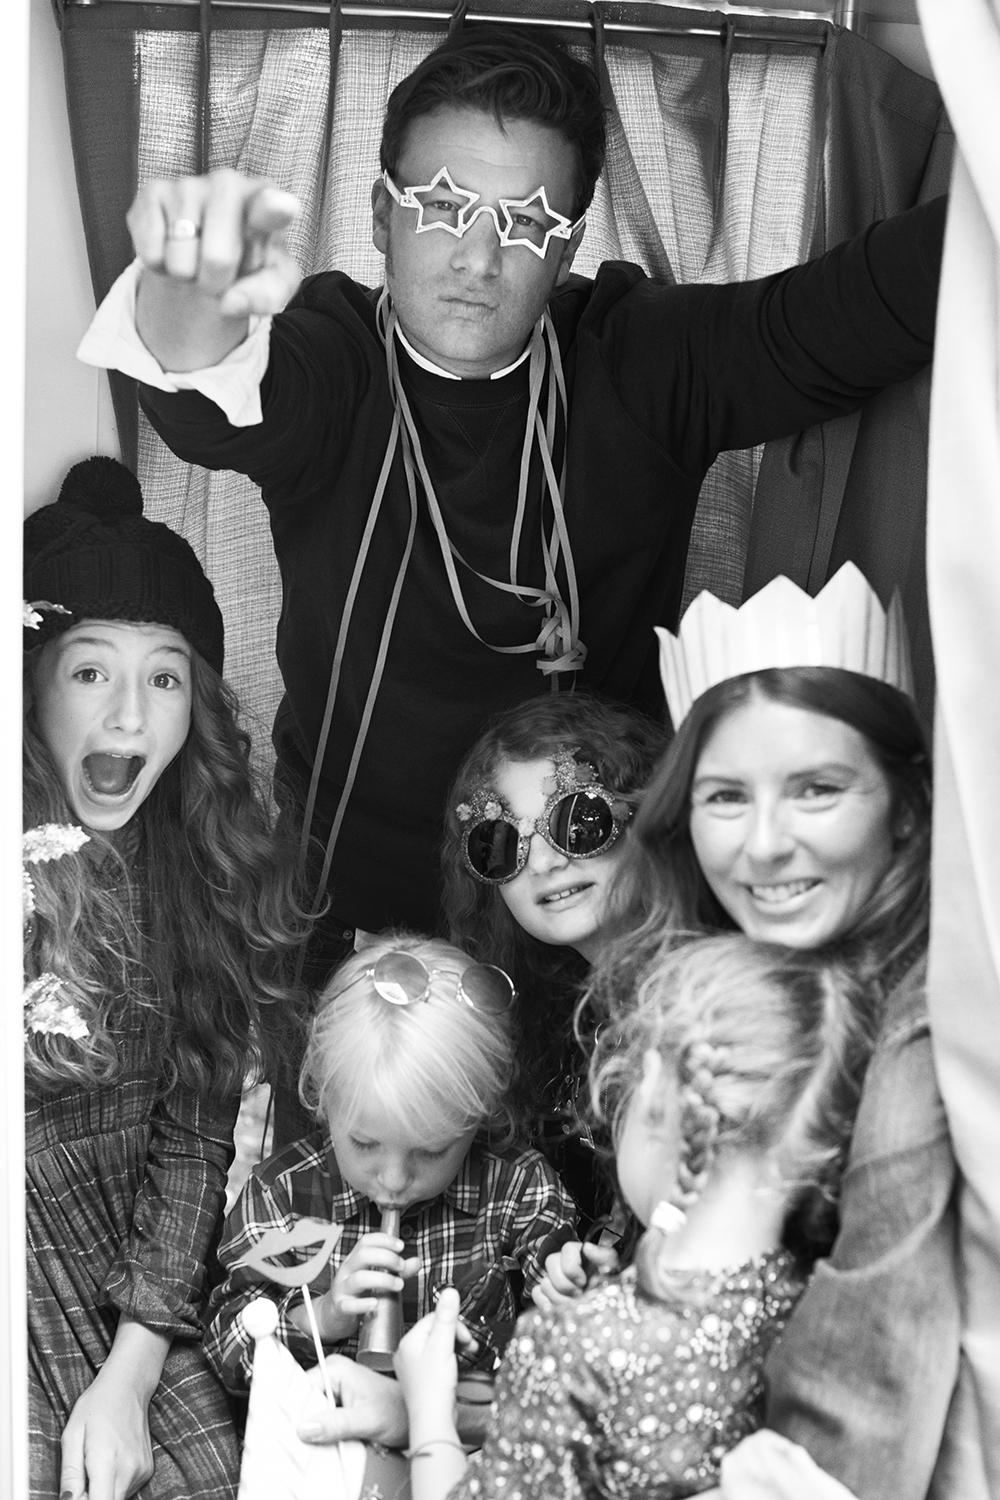 TR354_2014_08_06_Red_Jamie_Jools_Oliver_03_Photo_Booth_080.jpg